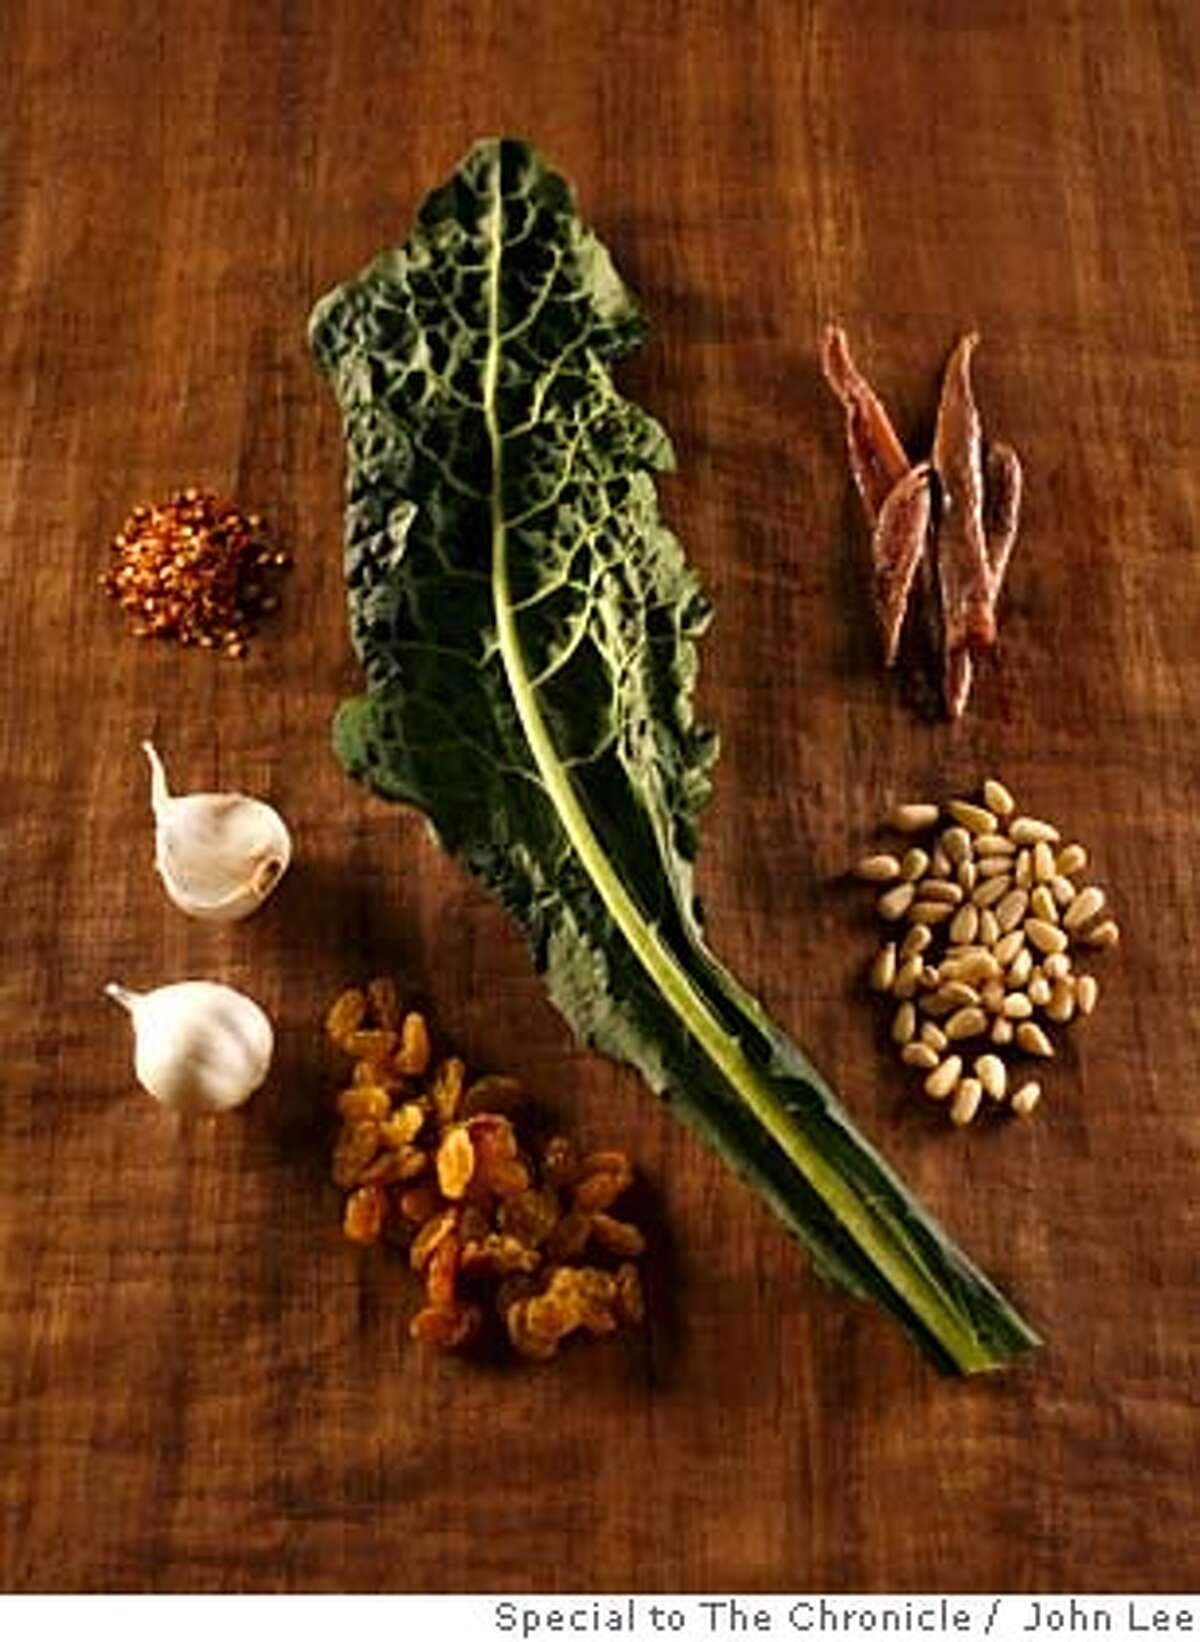 SEASONAL06_KALE_04_JOHNLEE.JPG Kale ingredients and individuals. By JOHN LEE/SPECIAL TO THE CHRONICLE Ran on: 02-20-2008 Sturdy Tuscan kale is also known as dinosaur kale, cavolo nero and lacinato kale.